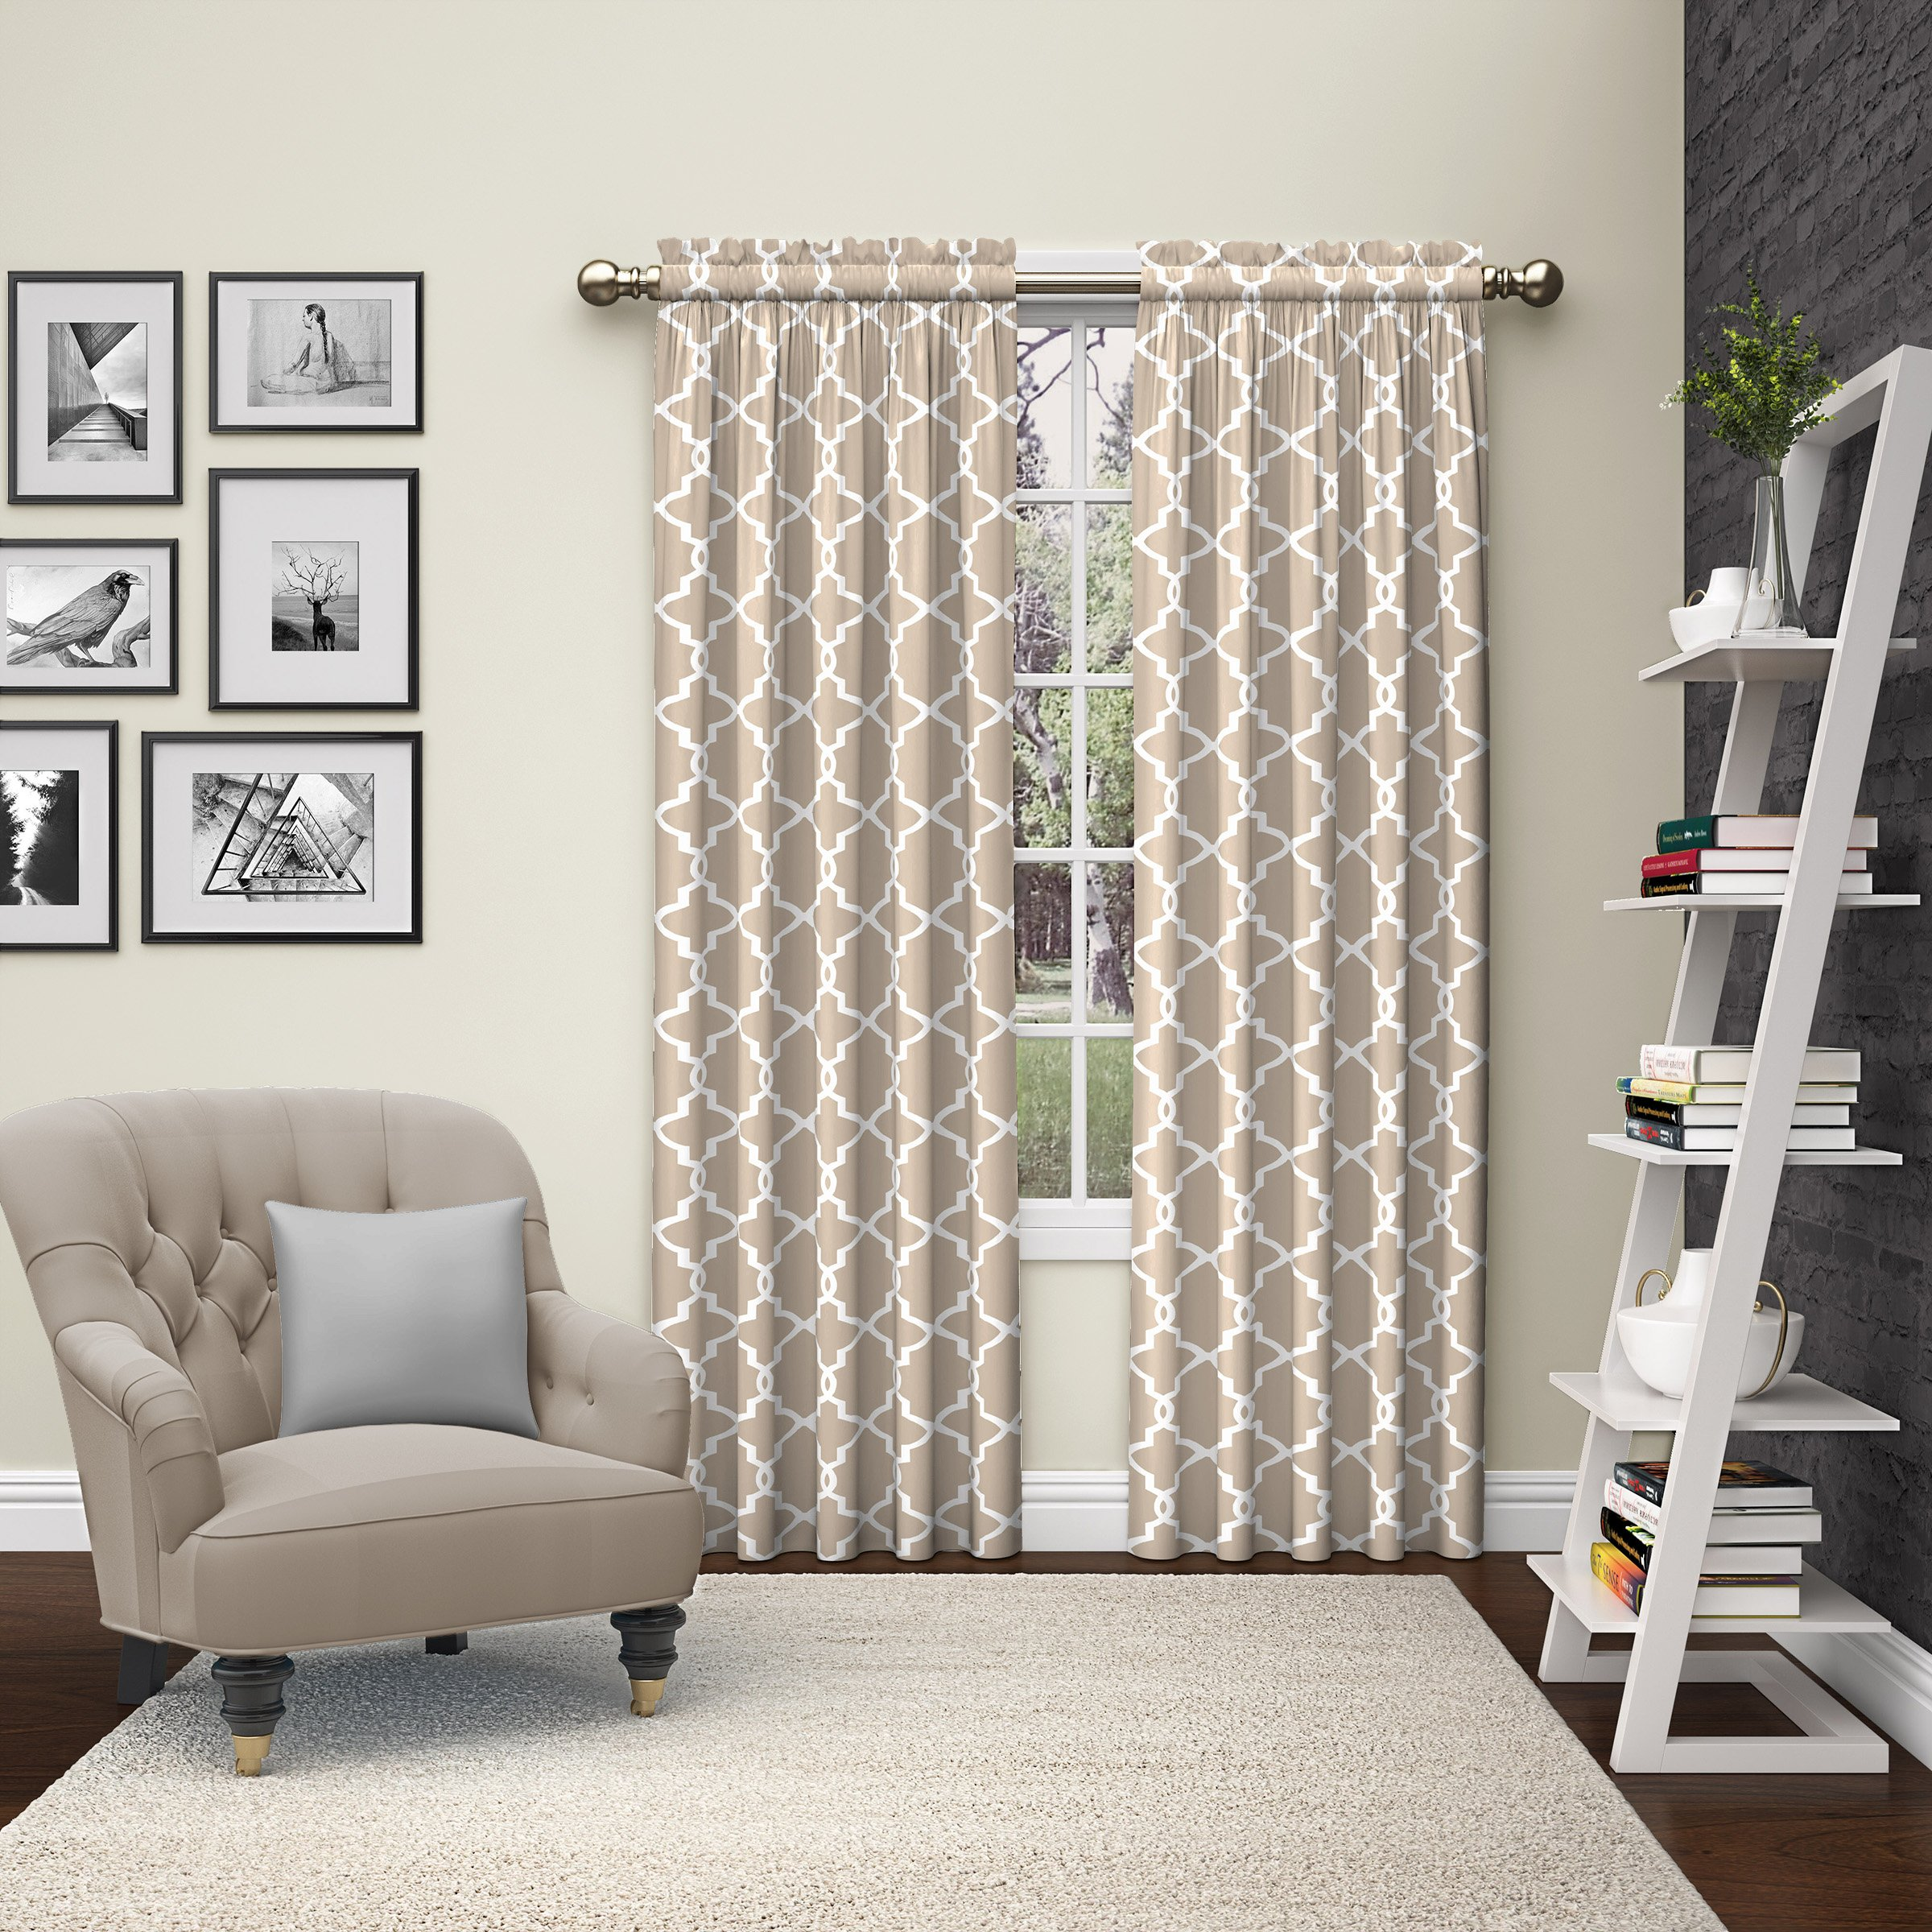 Pairs to Go 15617056X084SPA Vickery 56-Inch by 84-Inch Window Curtain Pair, Spa